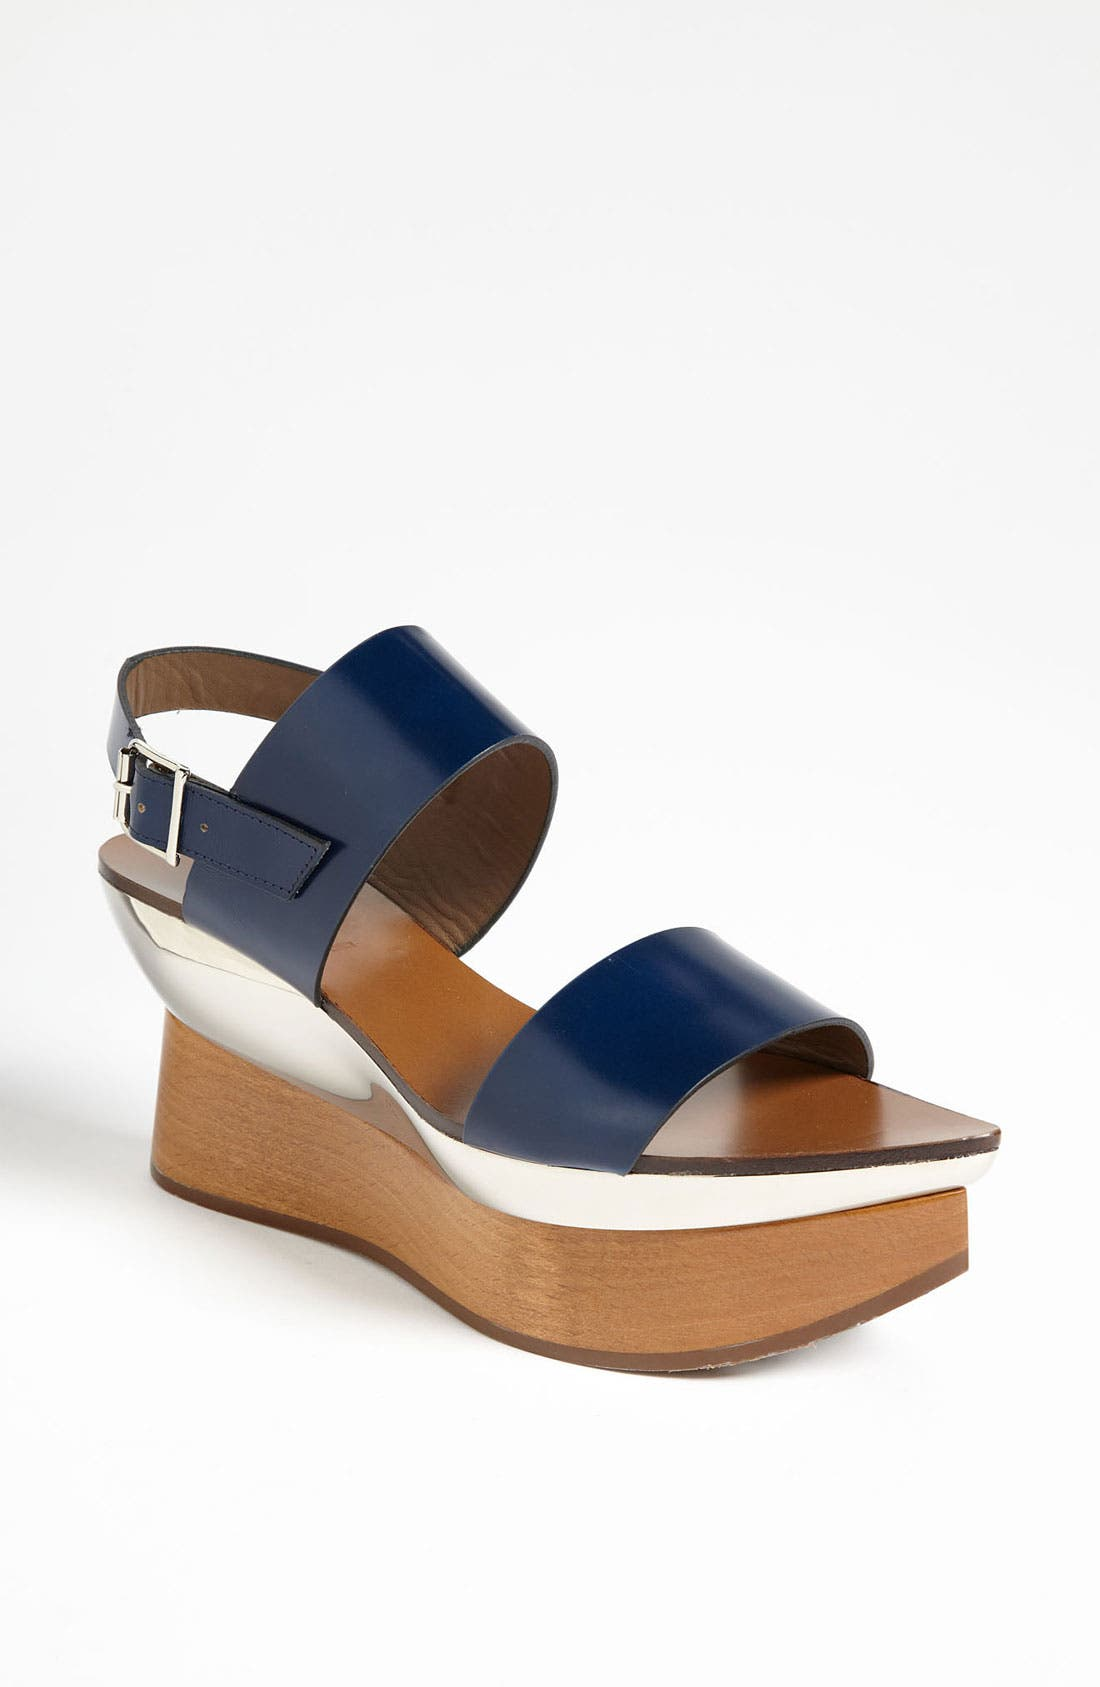 Alternate Image 1 Selected - Marni Double Band Wedge Sandal